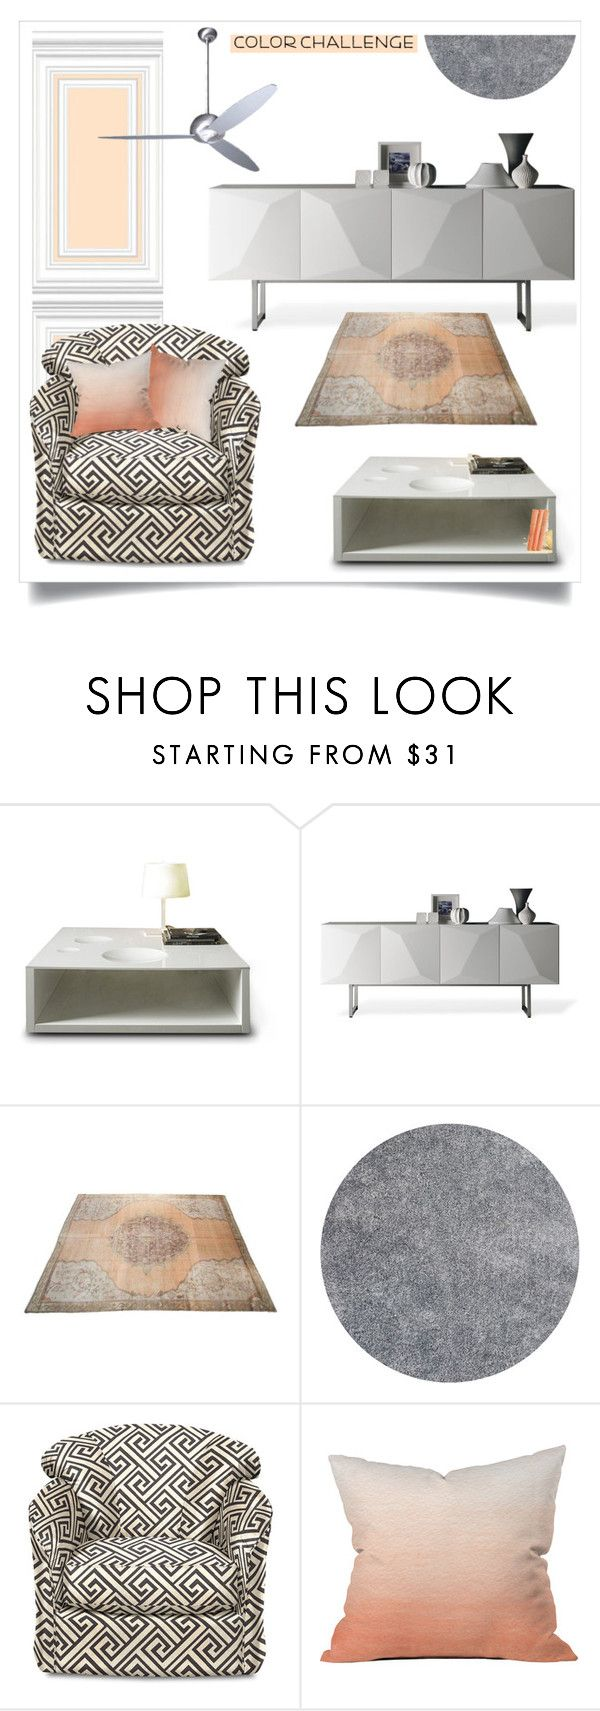 """""""Color Challenge: Gray & Peach"""" by slavicabojanovic ❤ liked on Polyvore featuring interior, interiors, interior design, home, home decor, interior decorating, Linfa Design, Dot & Bo, Modern Fan Company and colorchallenge"""